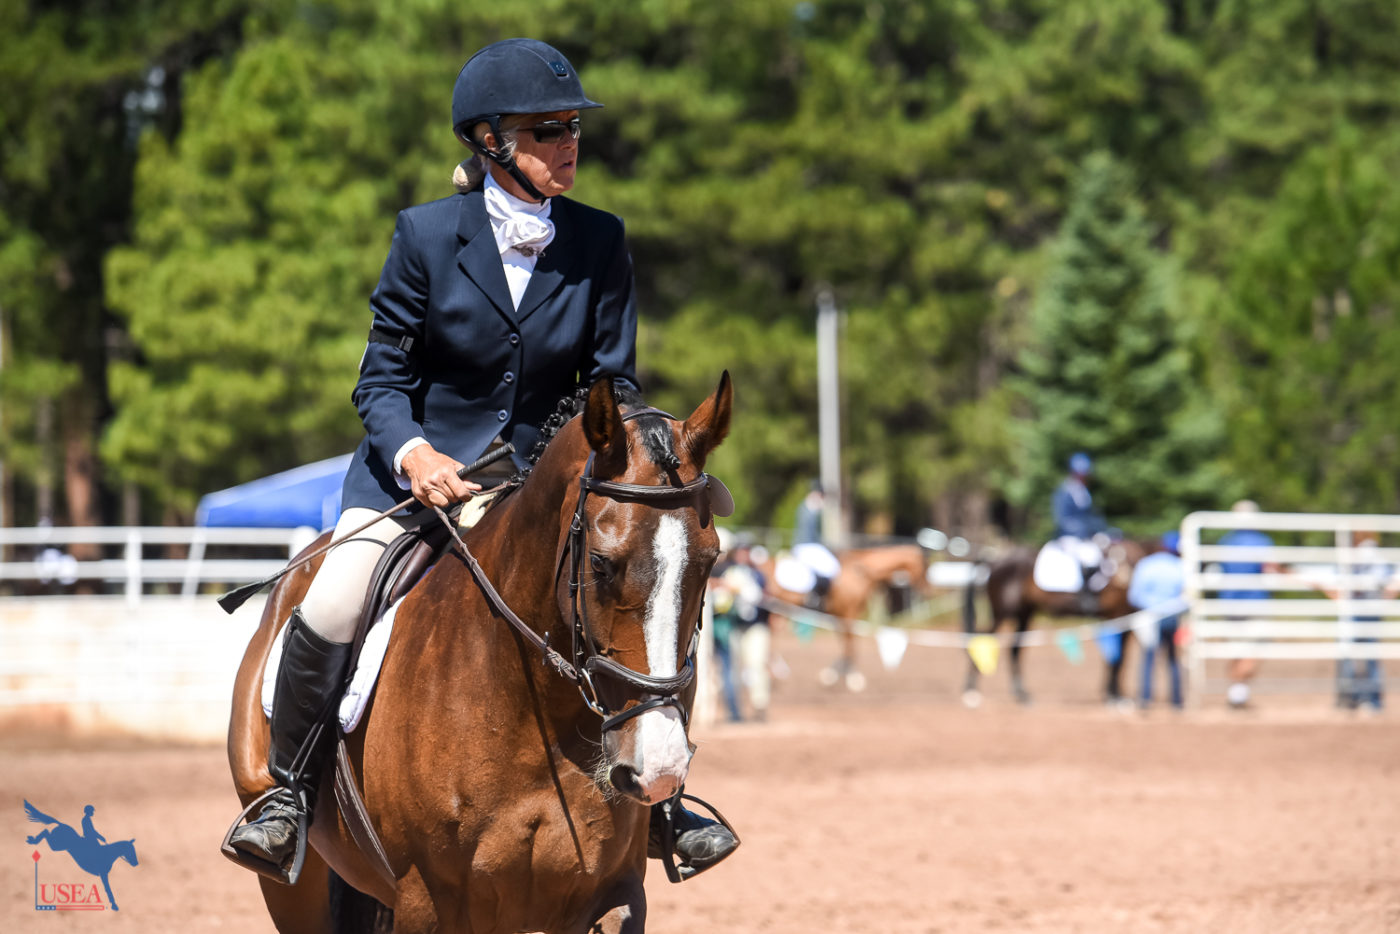 Dr. Jennifer Miller and Bon Bon before their winning show jump round. USEA/Jessica Duffy Photo.